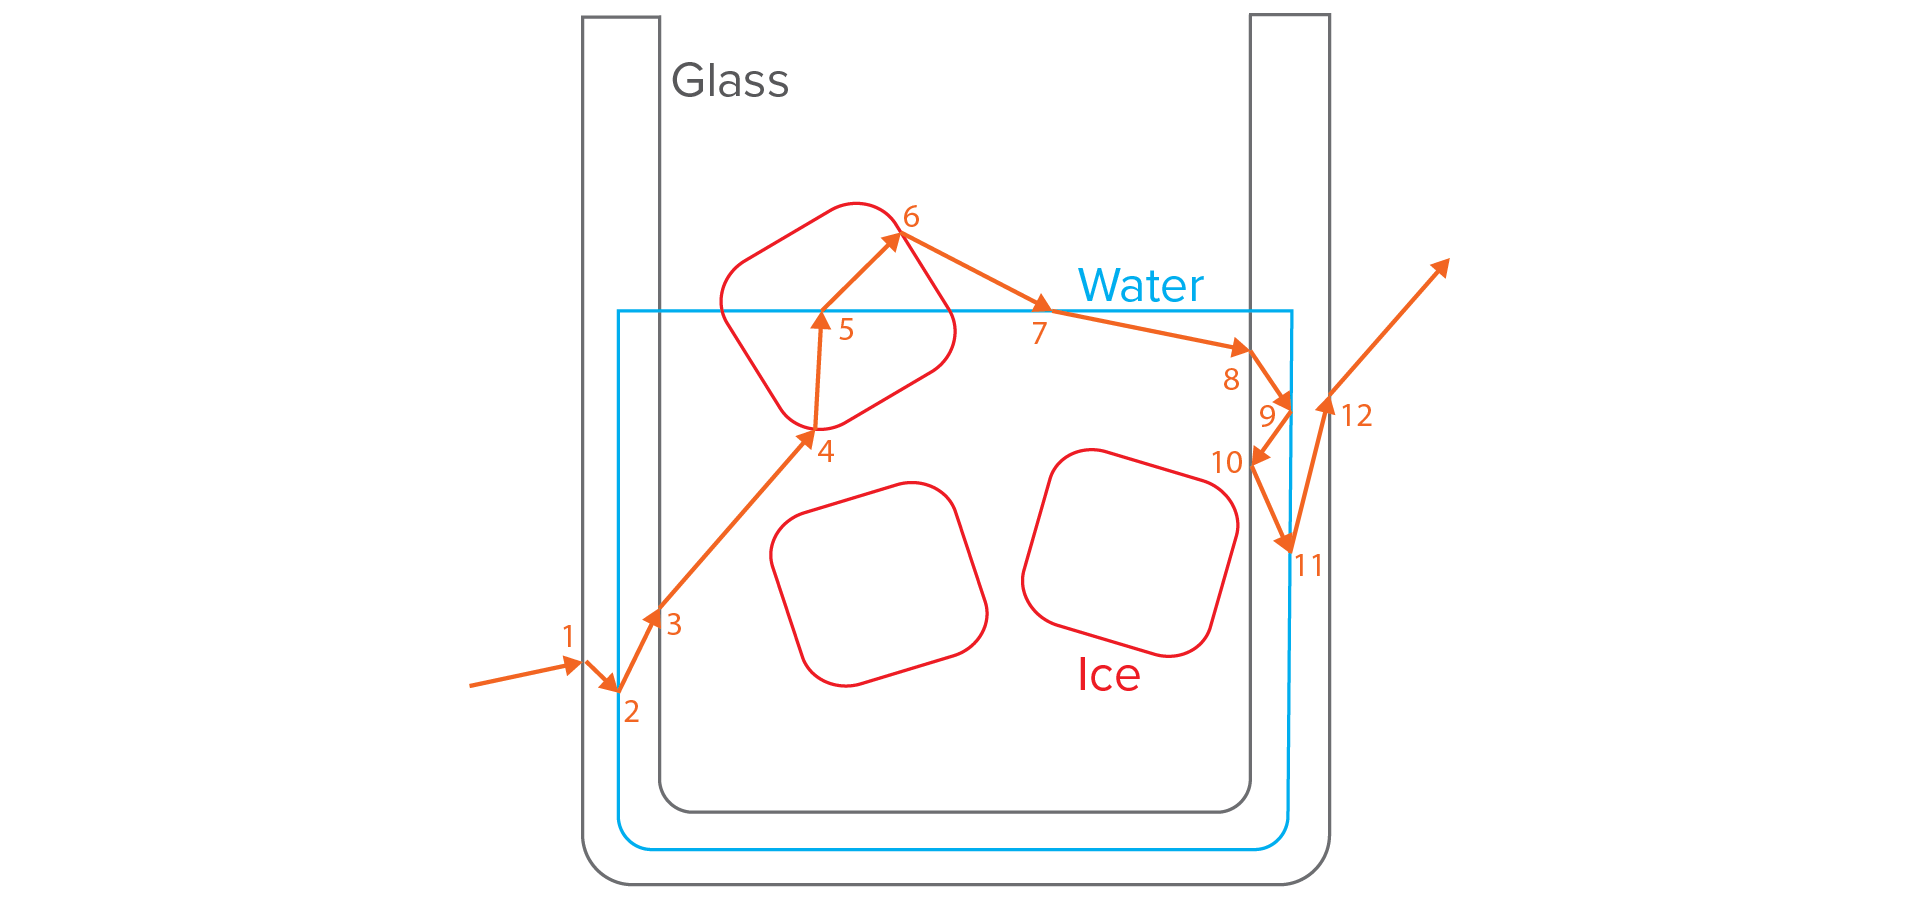 Figure 3: A diagram of a path through a glass containing water and ice cubes, using only interface tracking without priorities.